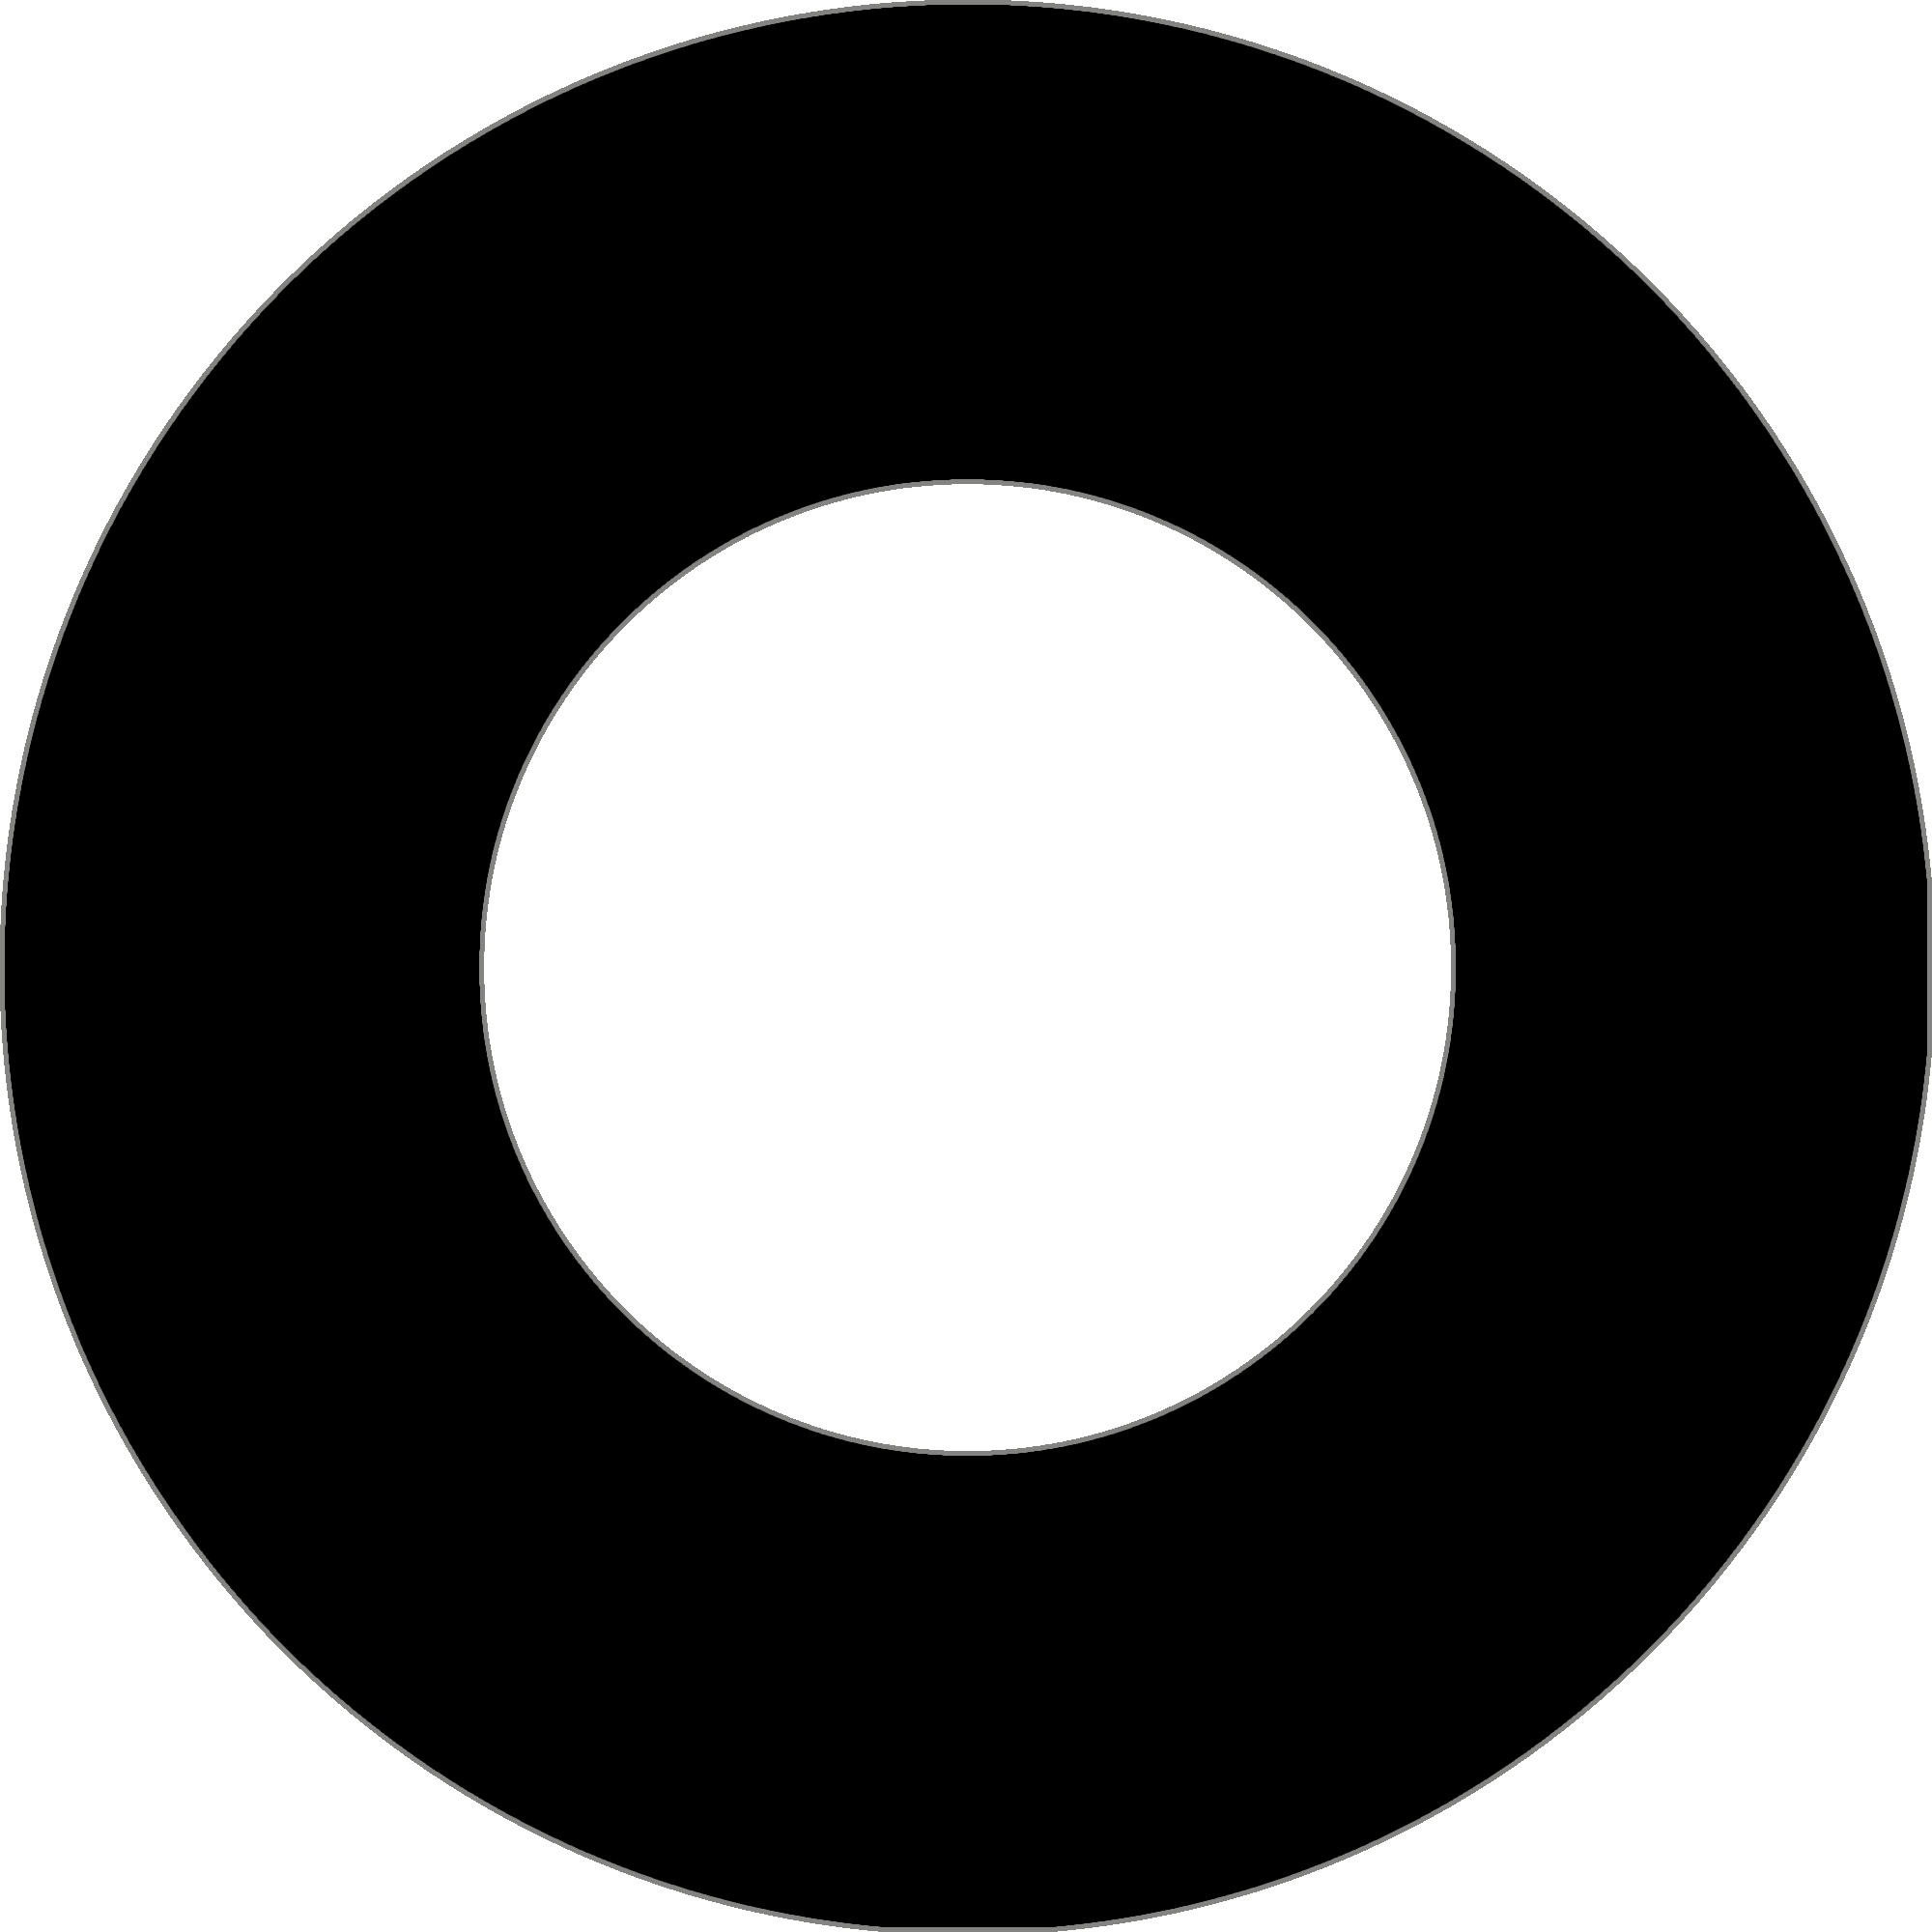 File:Black circle.png